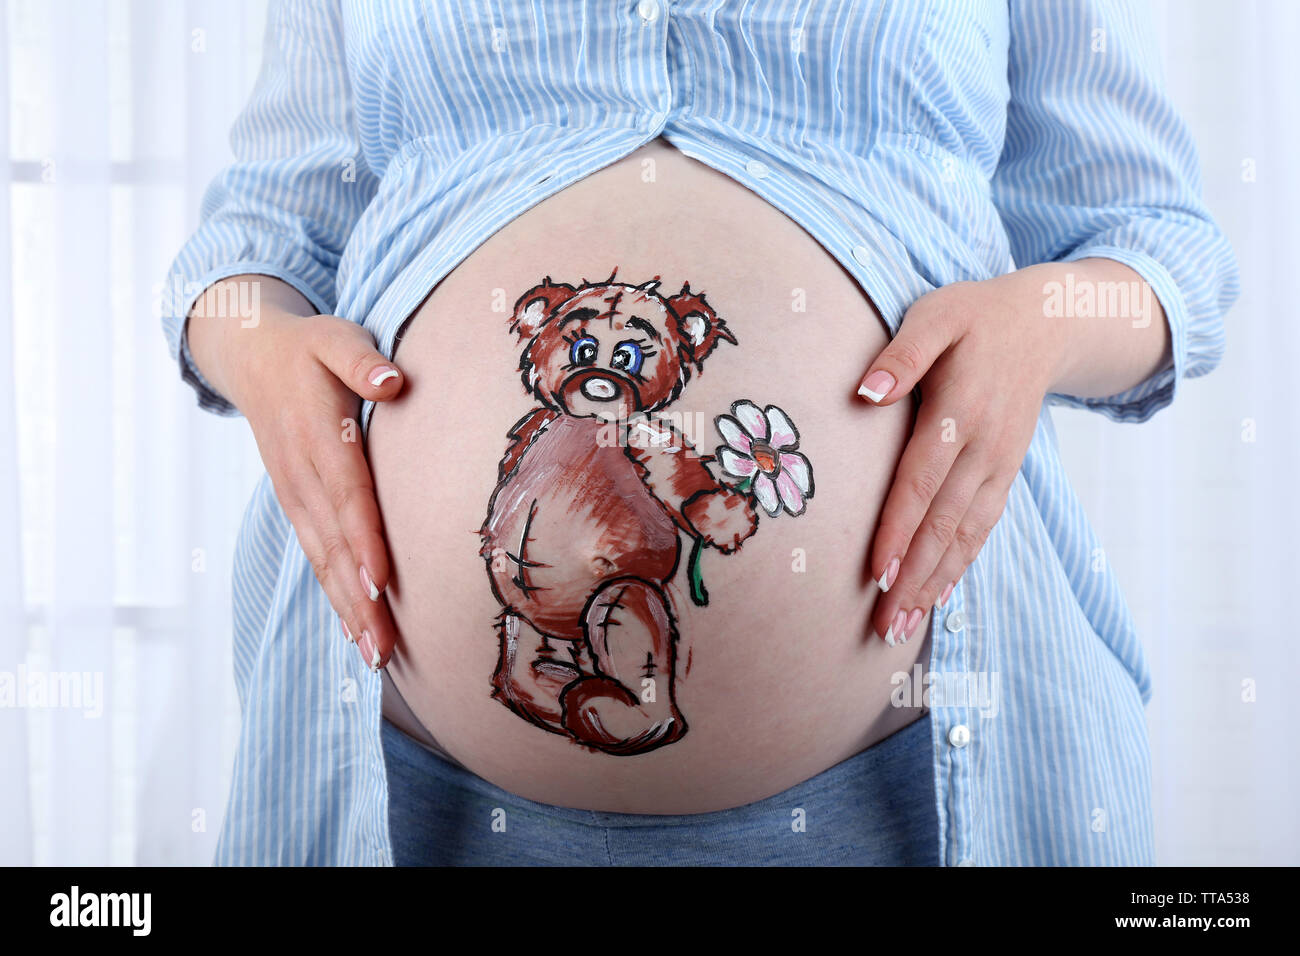 Body Art On Belly Of Pregnant Woman On Light Background Stock Photo Alamy